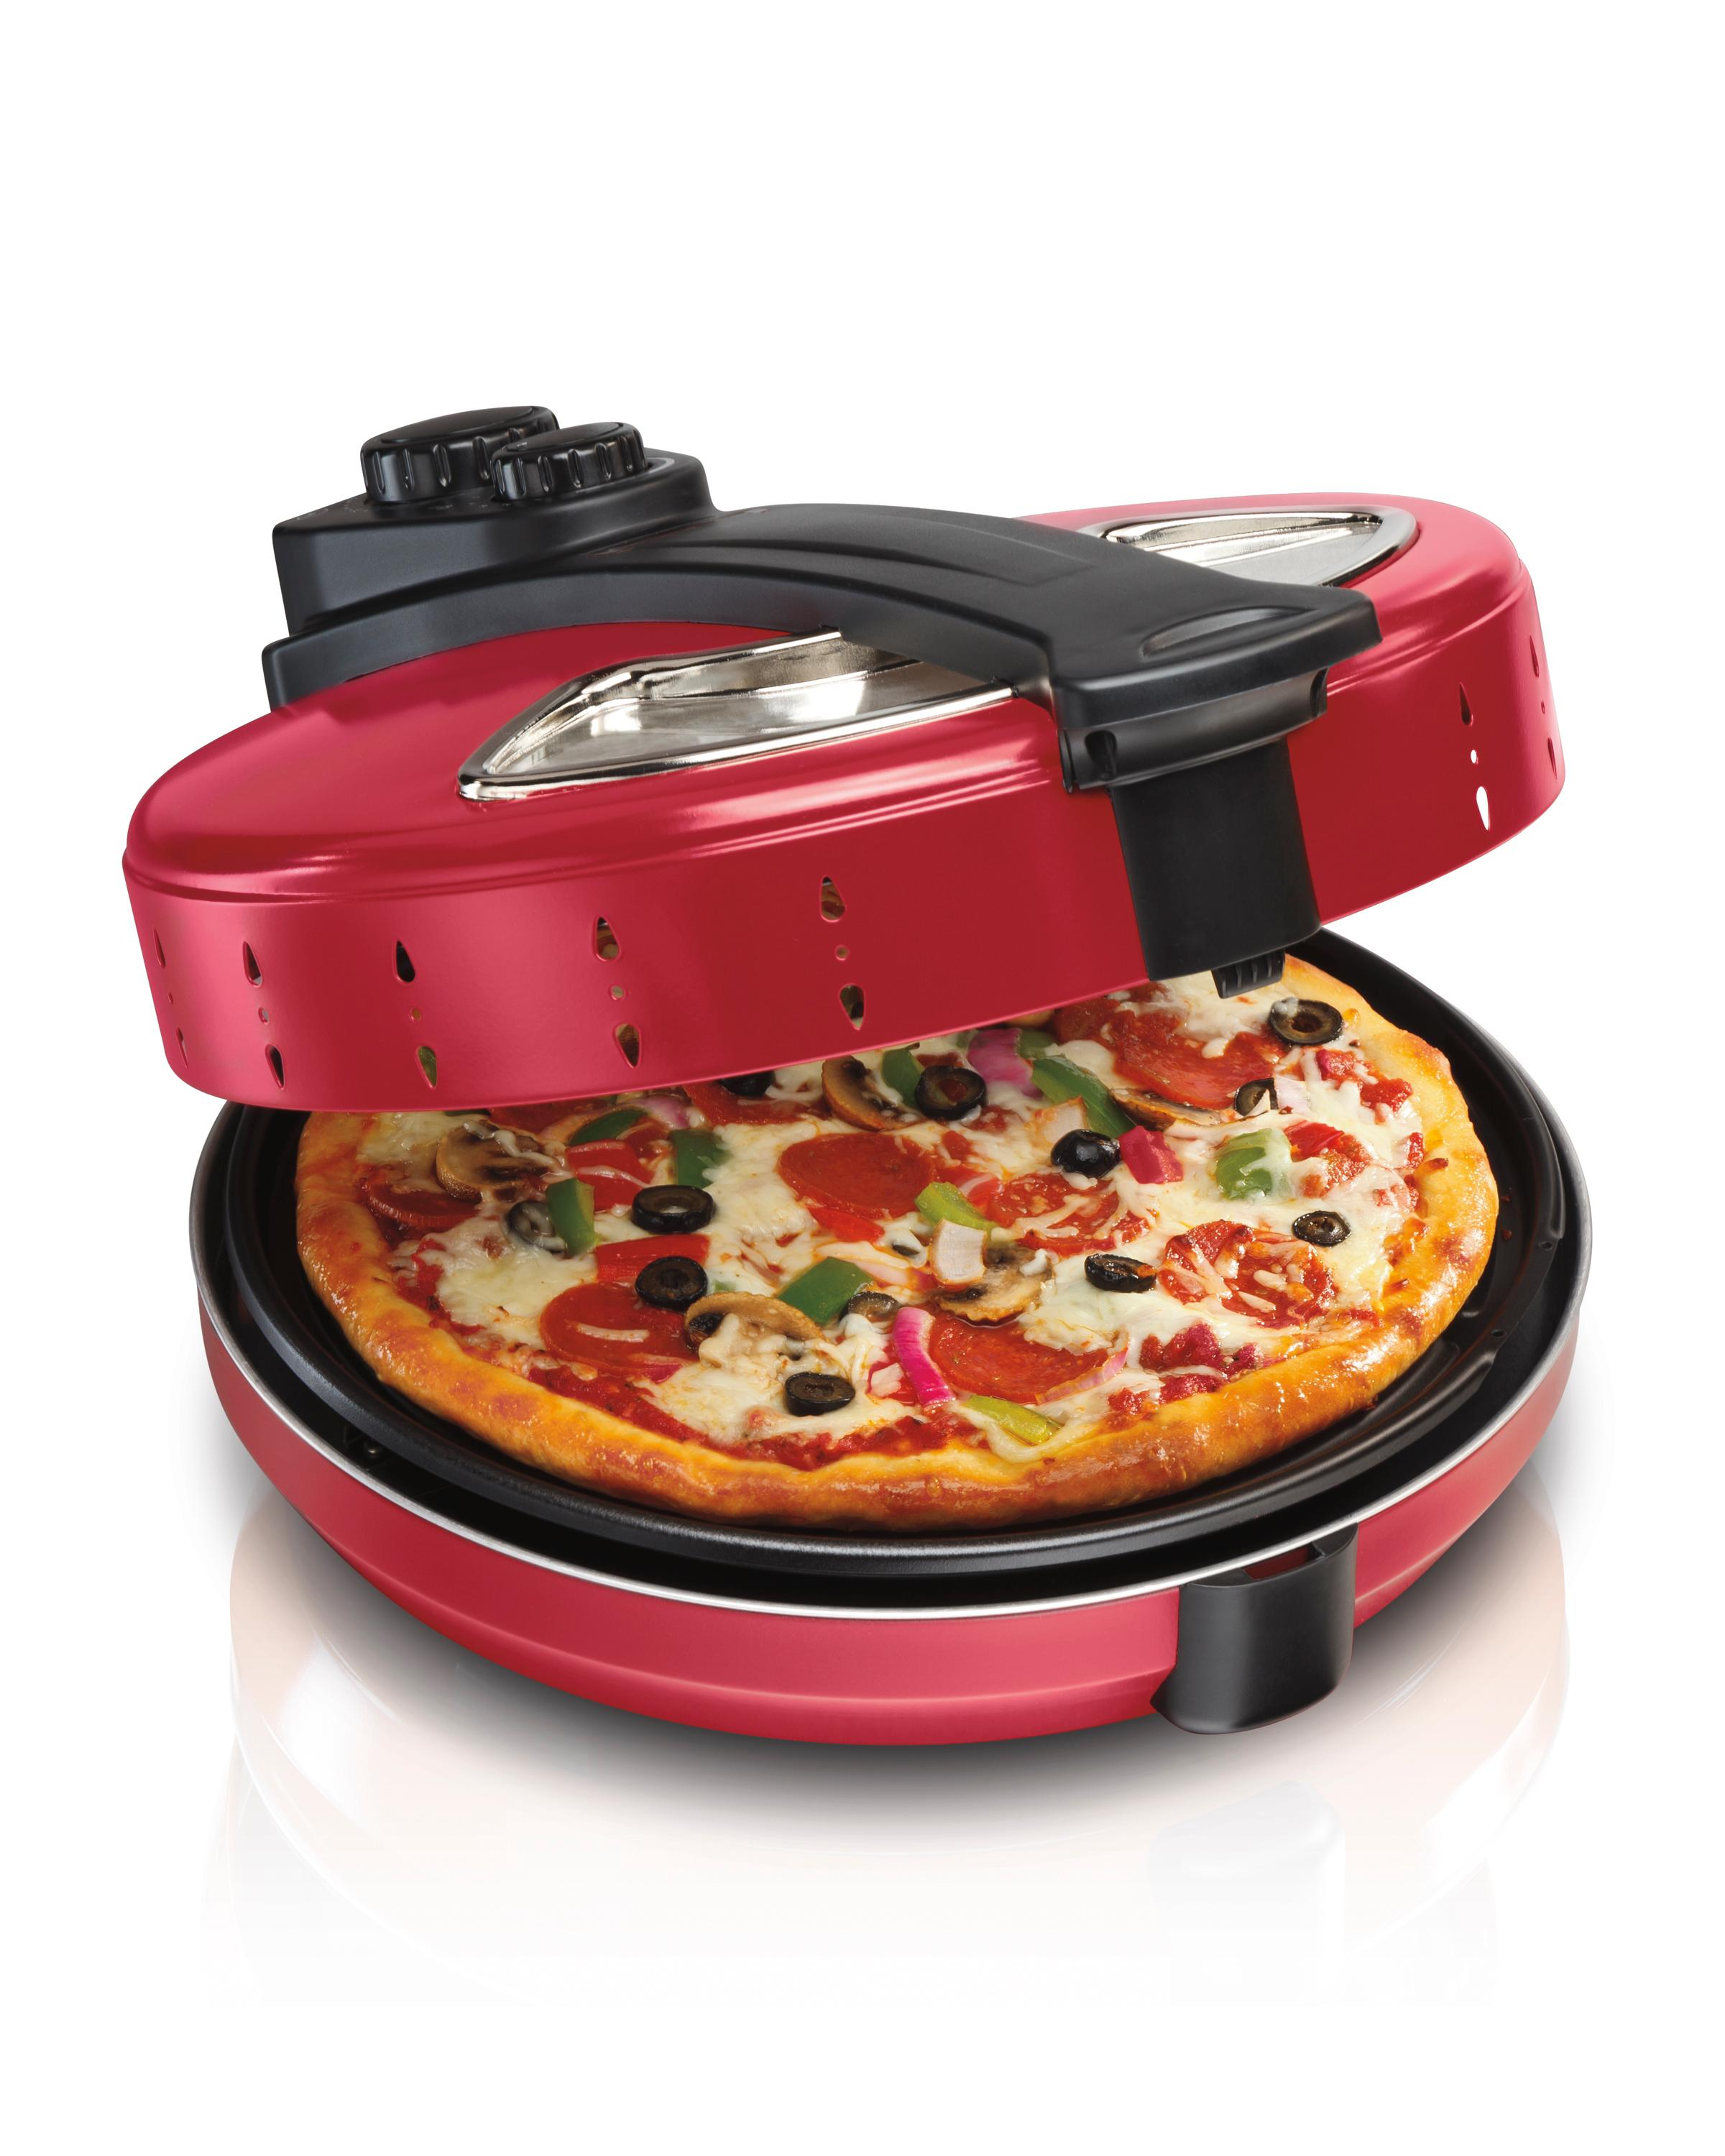 pizza ovens small for kids maker mini pizza best rated ...